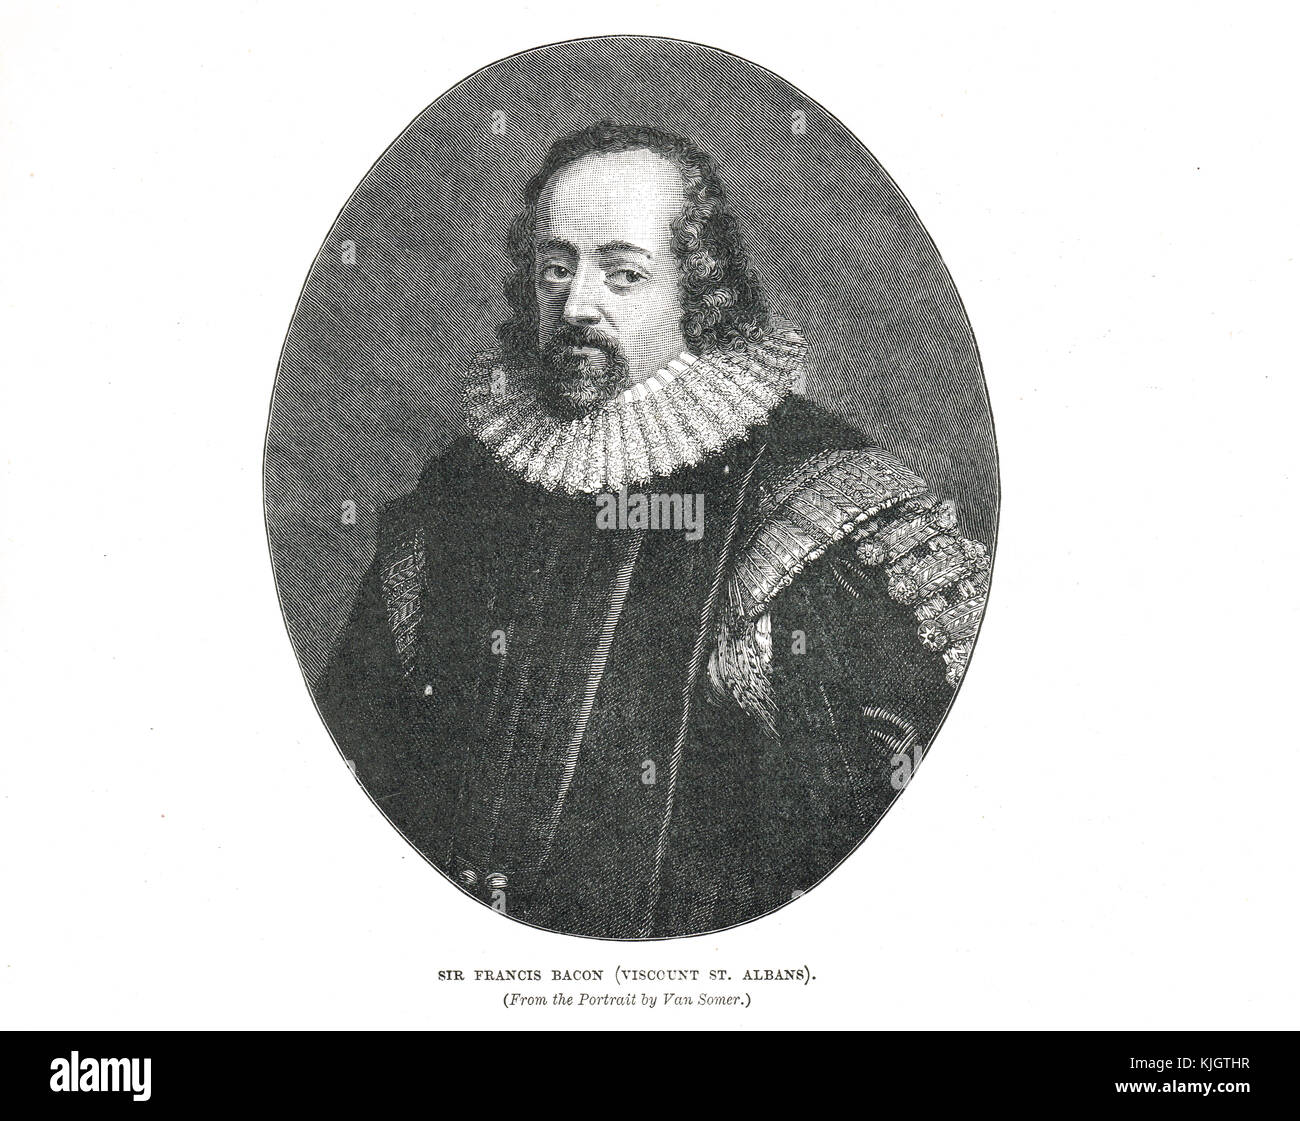 Francis Bacon, 1st Viscount St Albans - Stock Image